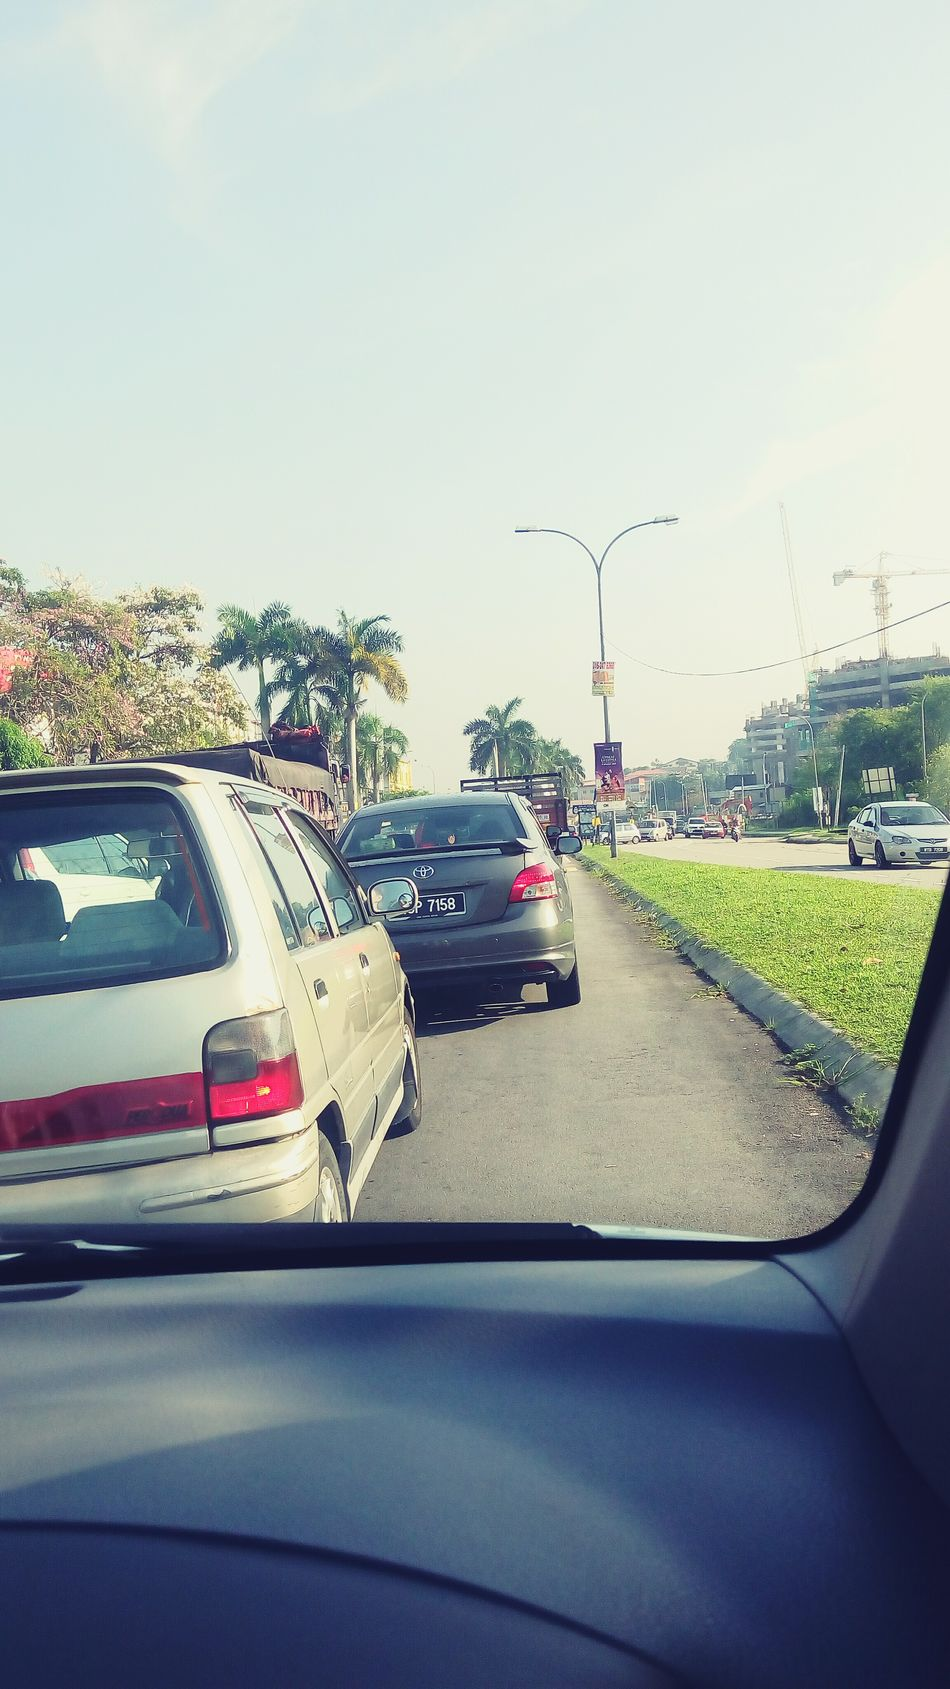 Trafic Jam jam everywhere =_= Just Another Day Morning Tired And Bored Working Hard Enjoying The Sun? Malaysia Balakong Hmmm...